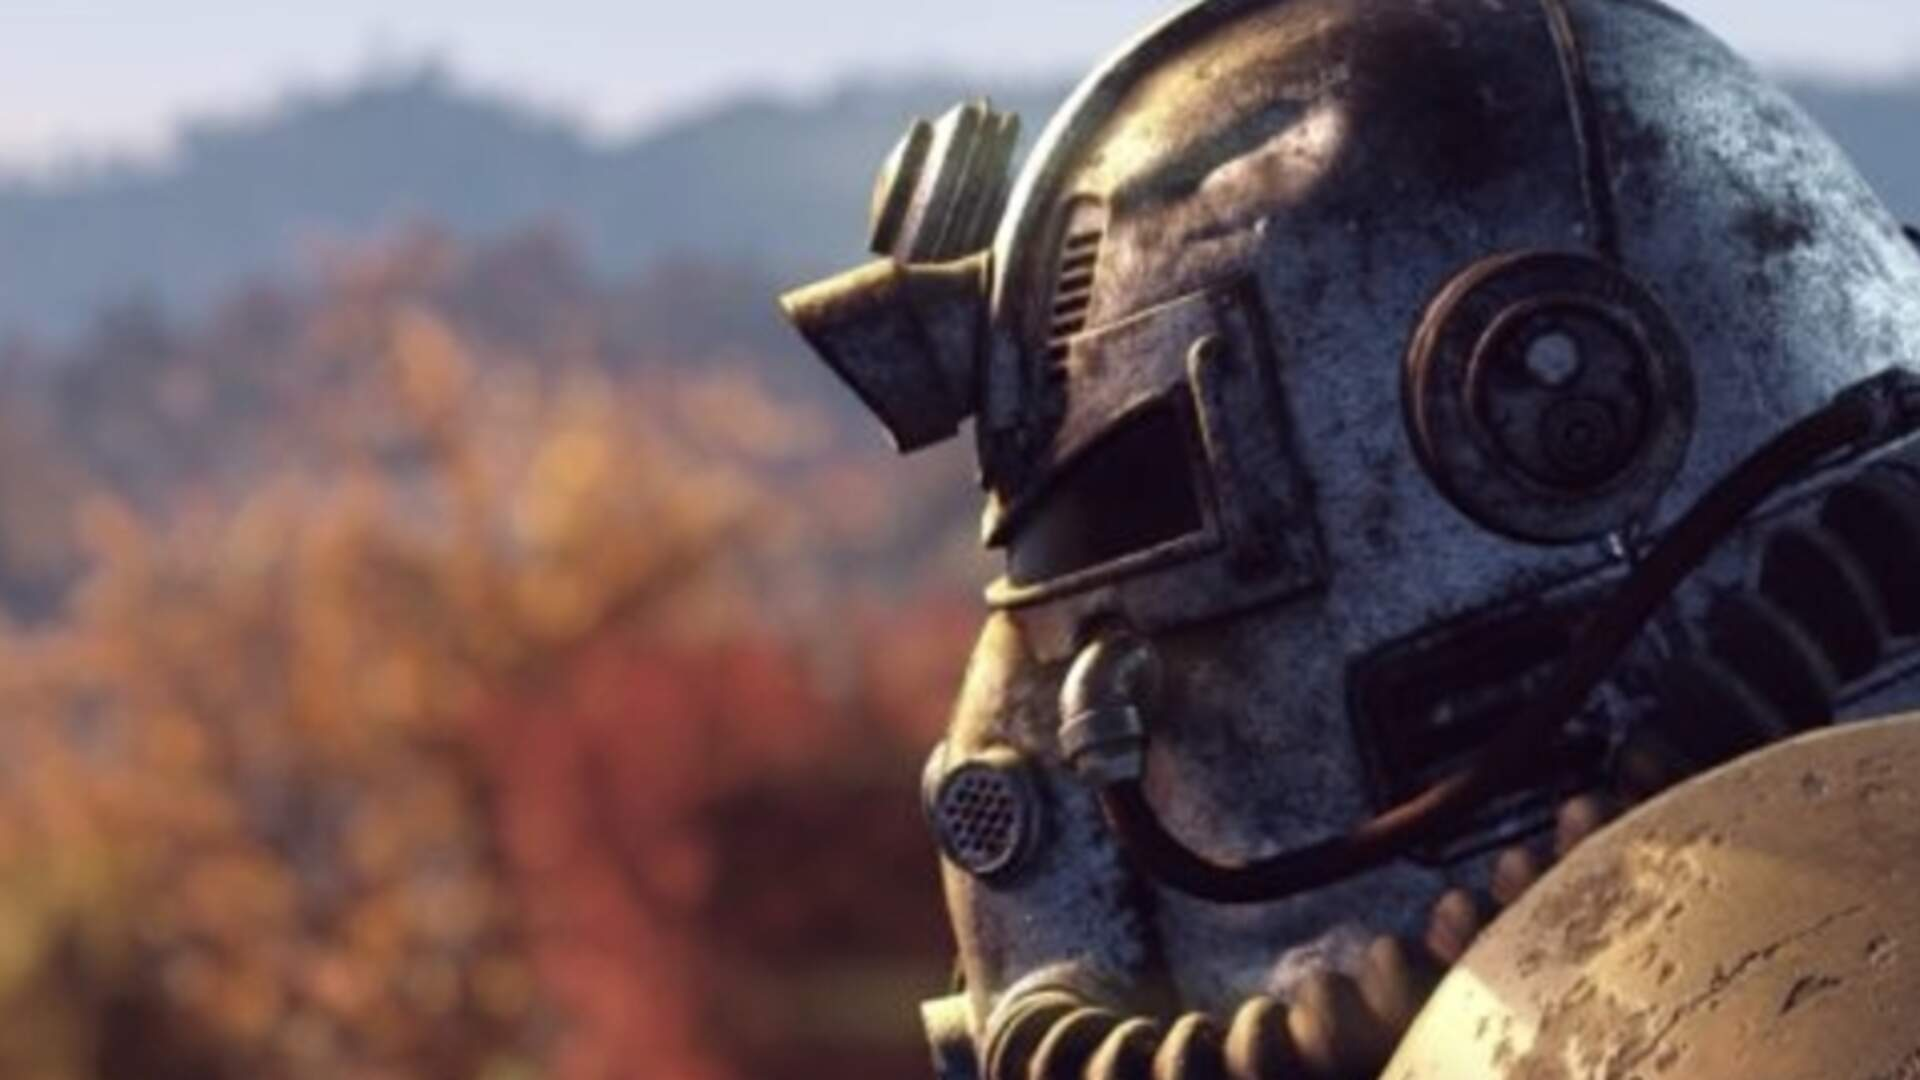 Fallout 76 Third Best-Selling Launch in Franchise History